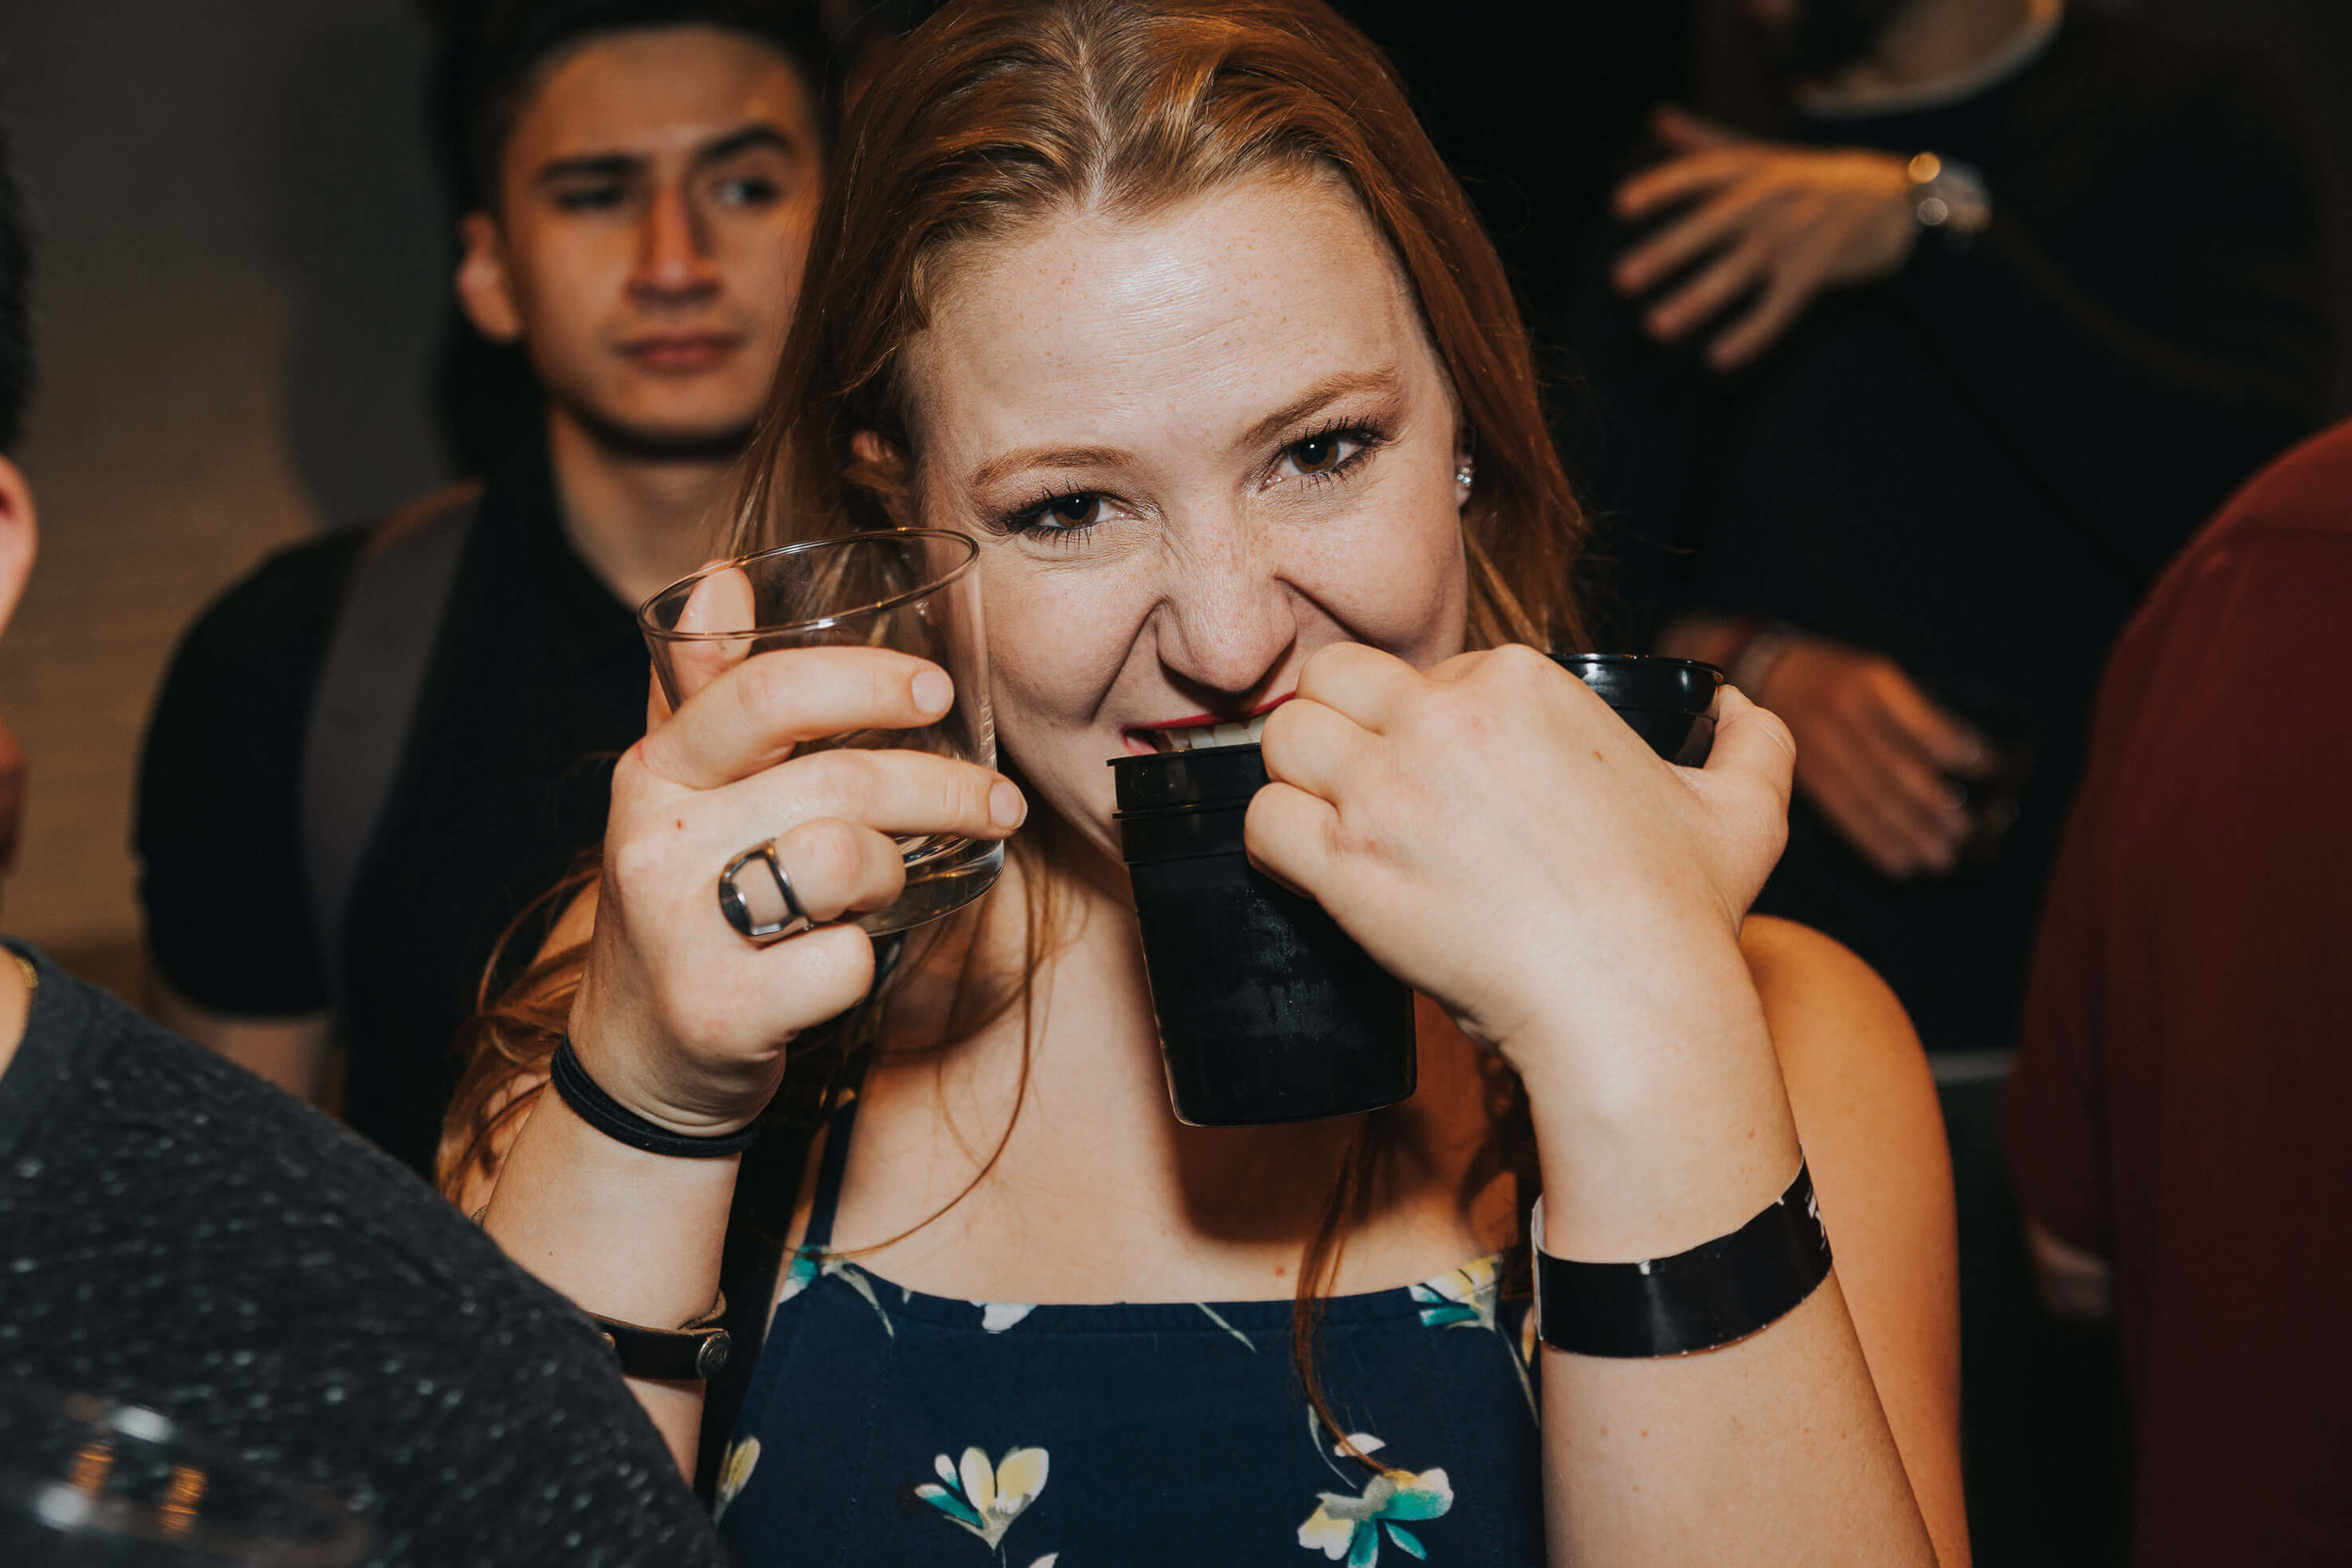 Chicago Event Photography_The Whisky X @ Revel_10.jpg